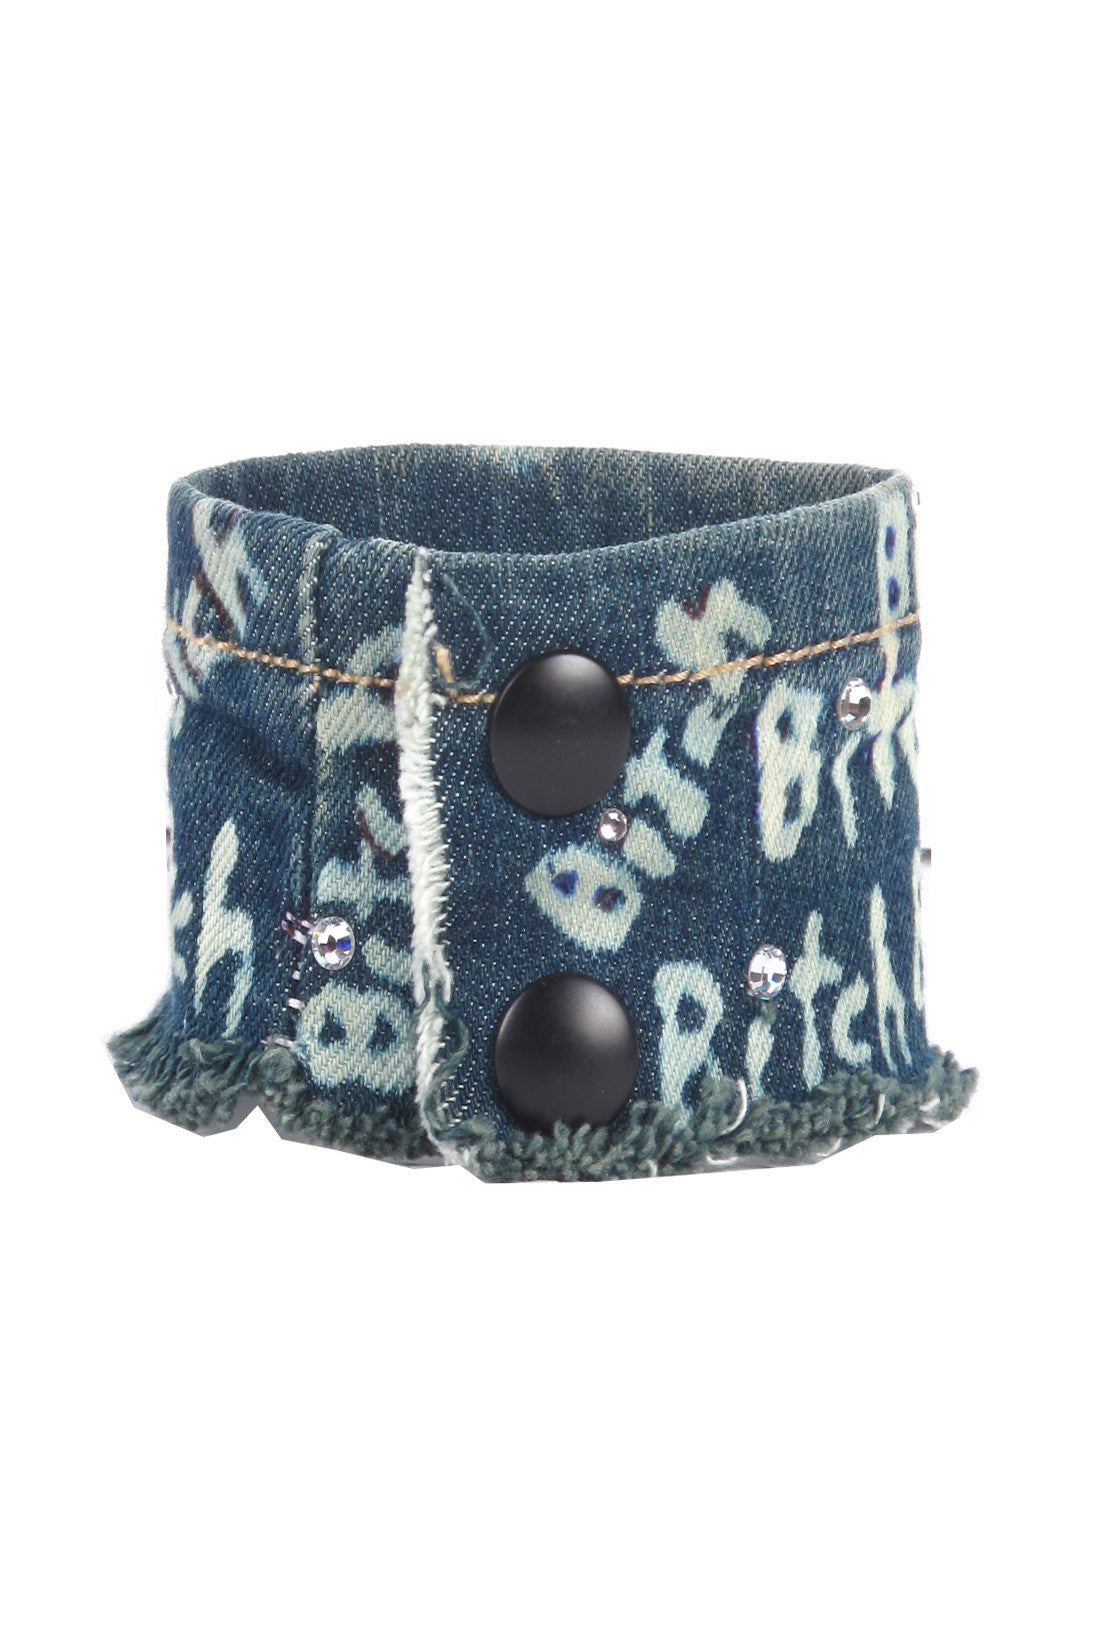 BITCH DENIM CUFF- AVAILABLE FOR IMMEDIATE DELIVERY